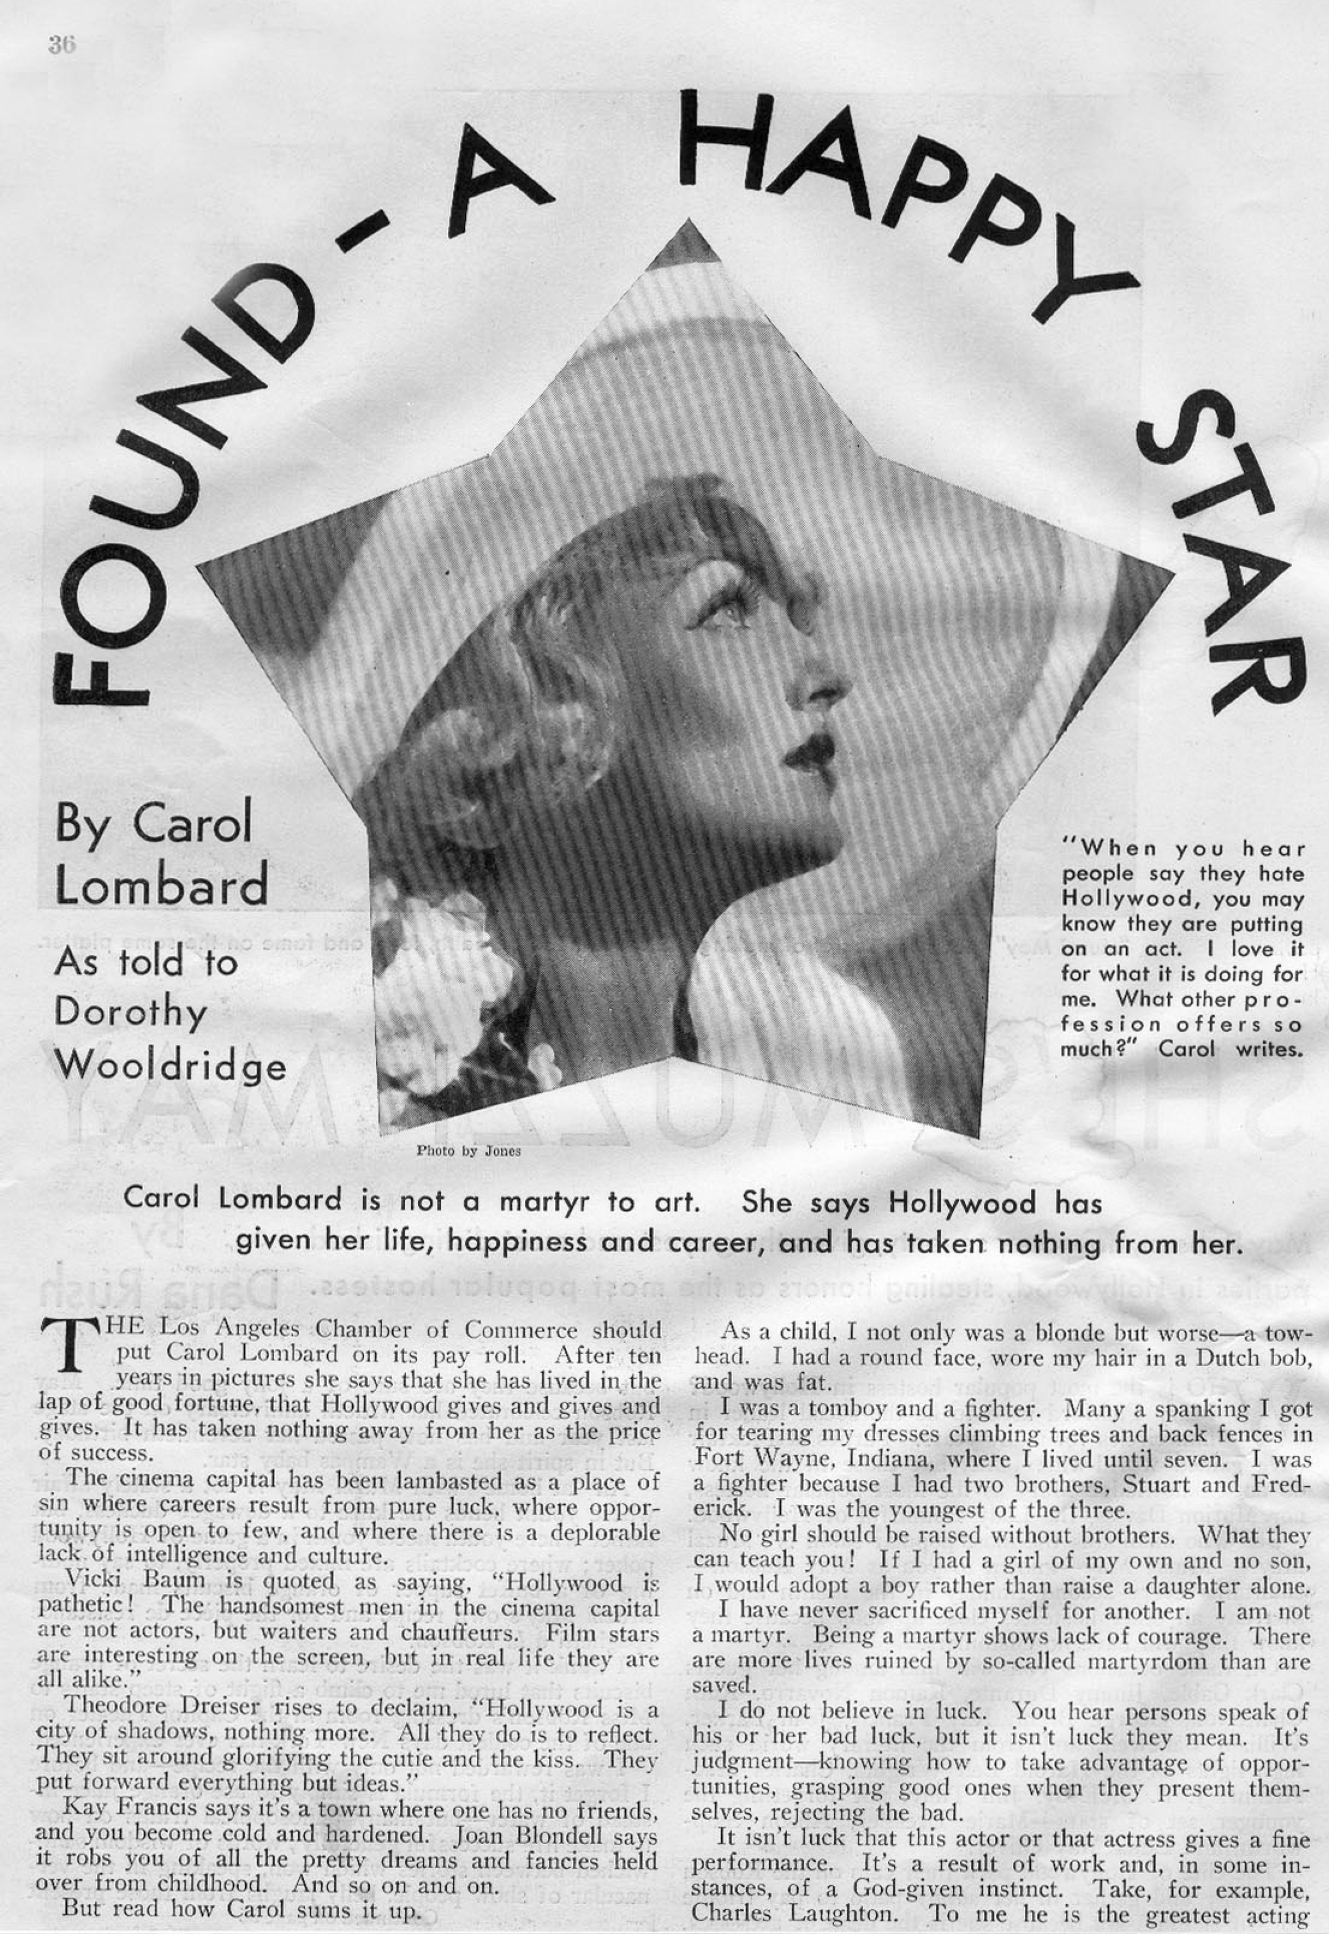 carole lombard picture play june 1934 found a happy star 00b